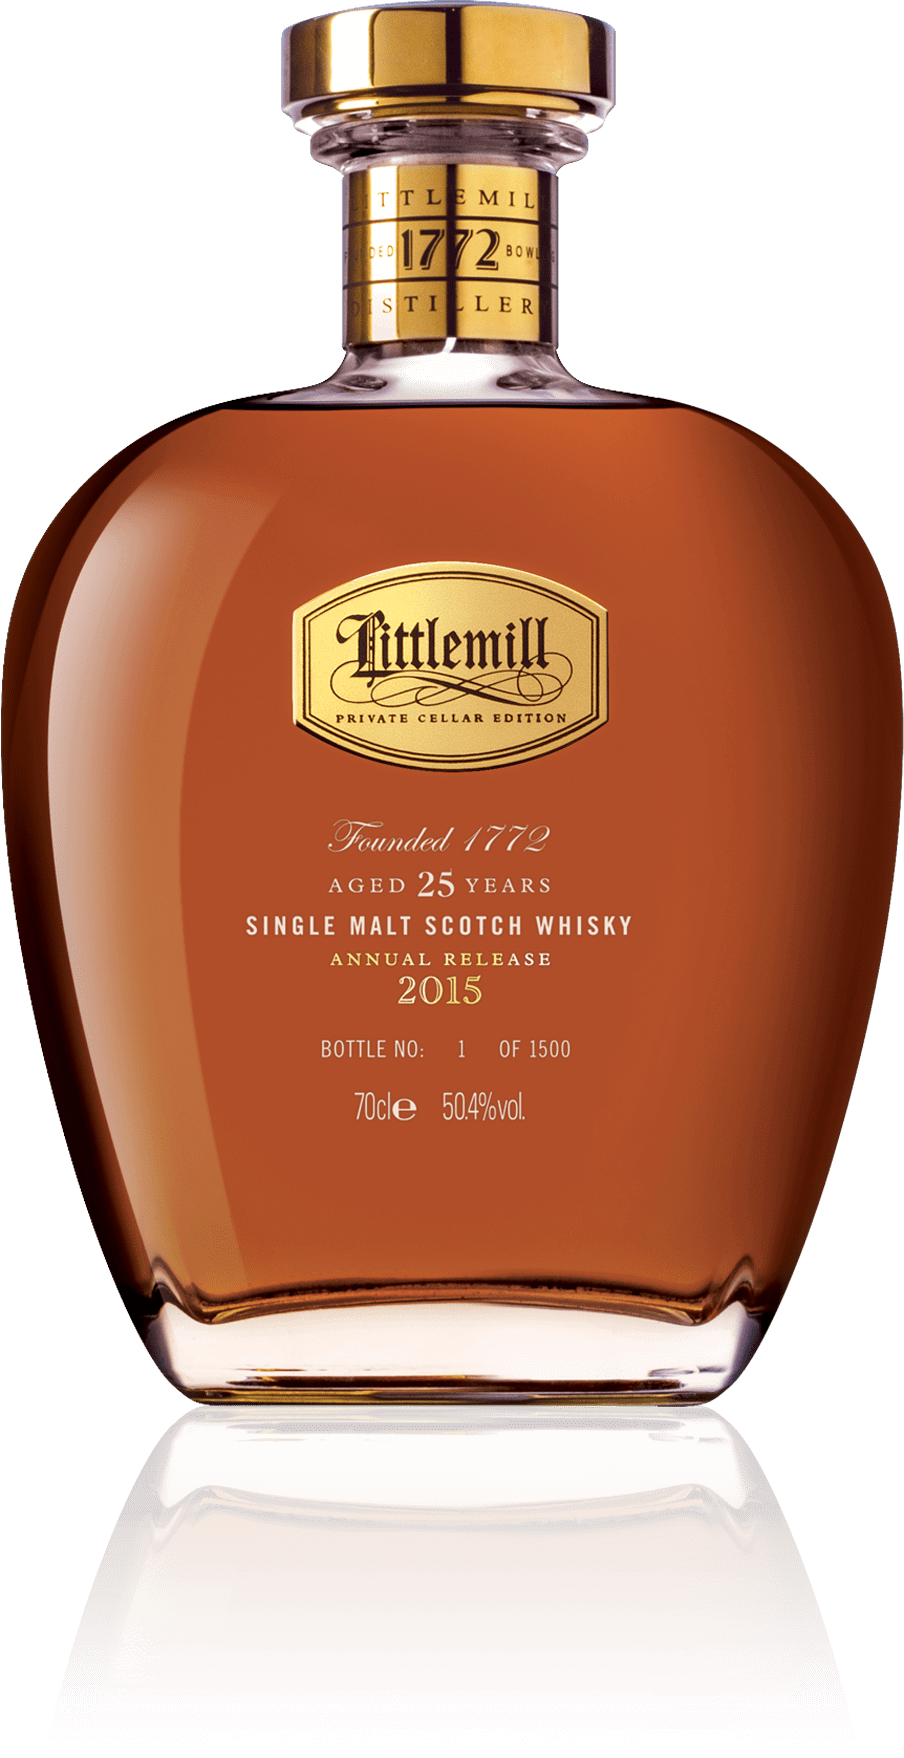 LITTLEMILL 2015 AGED 25 YEARS